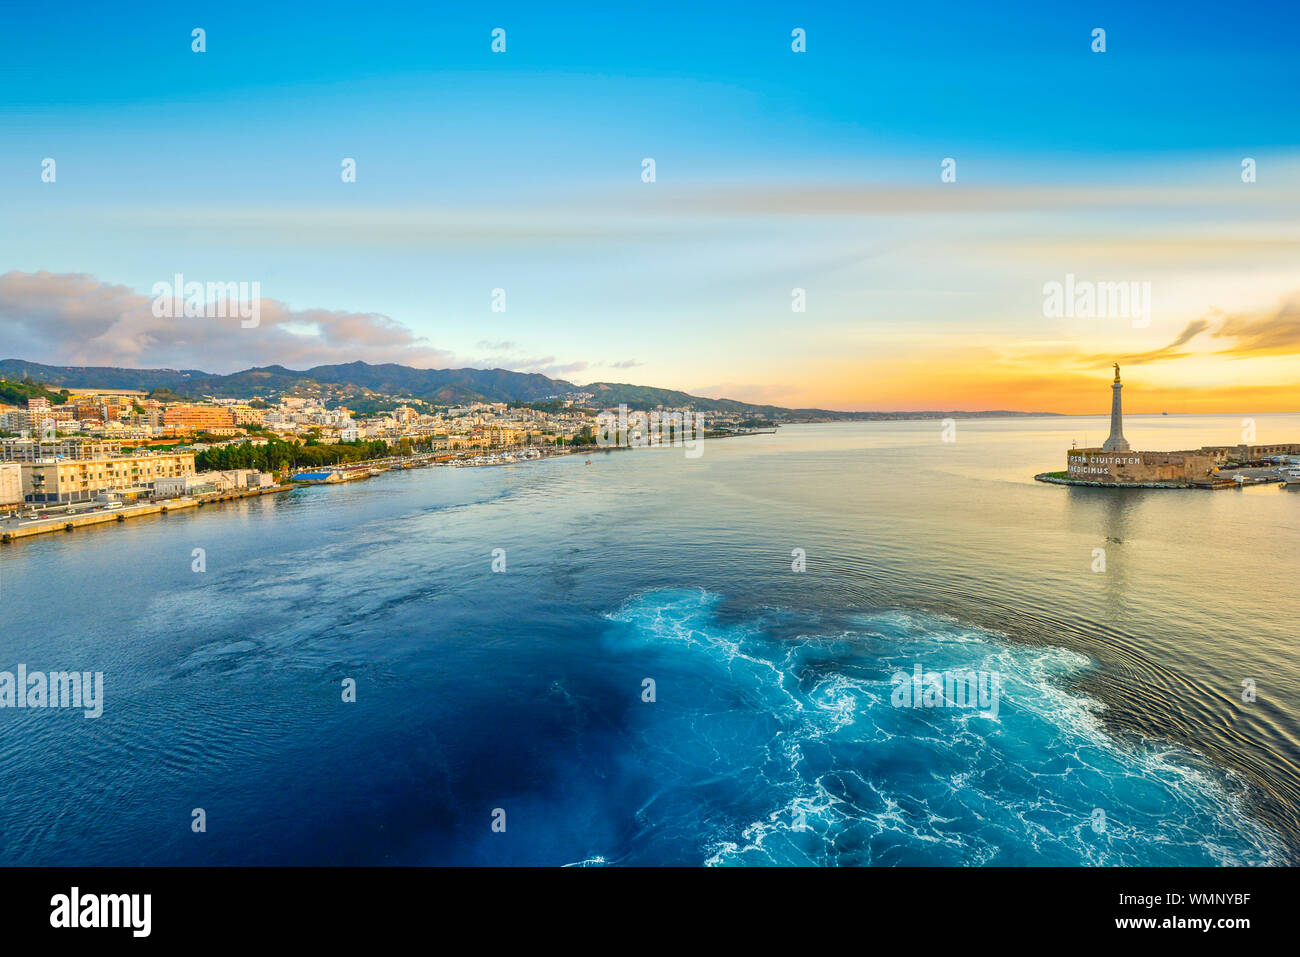 Sunrise from a cruise ship at the port of Messina, Italy on the island of Sicily in the Mediterranean Sea Stock Photo